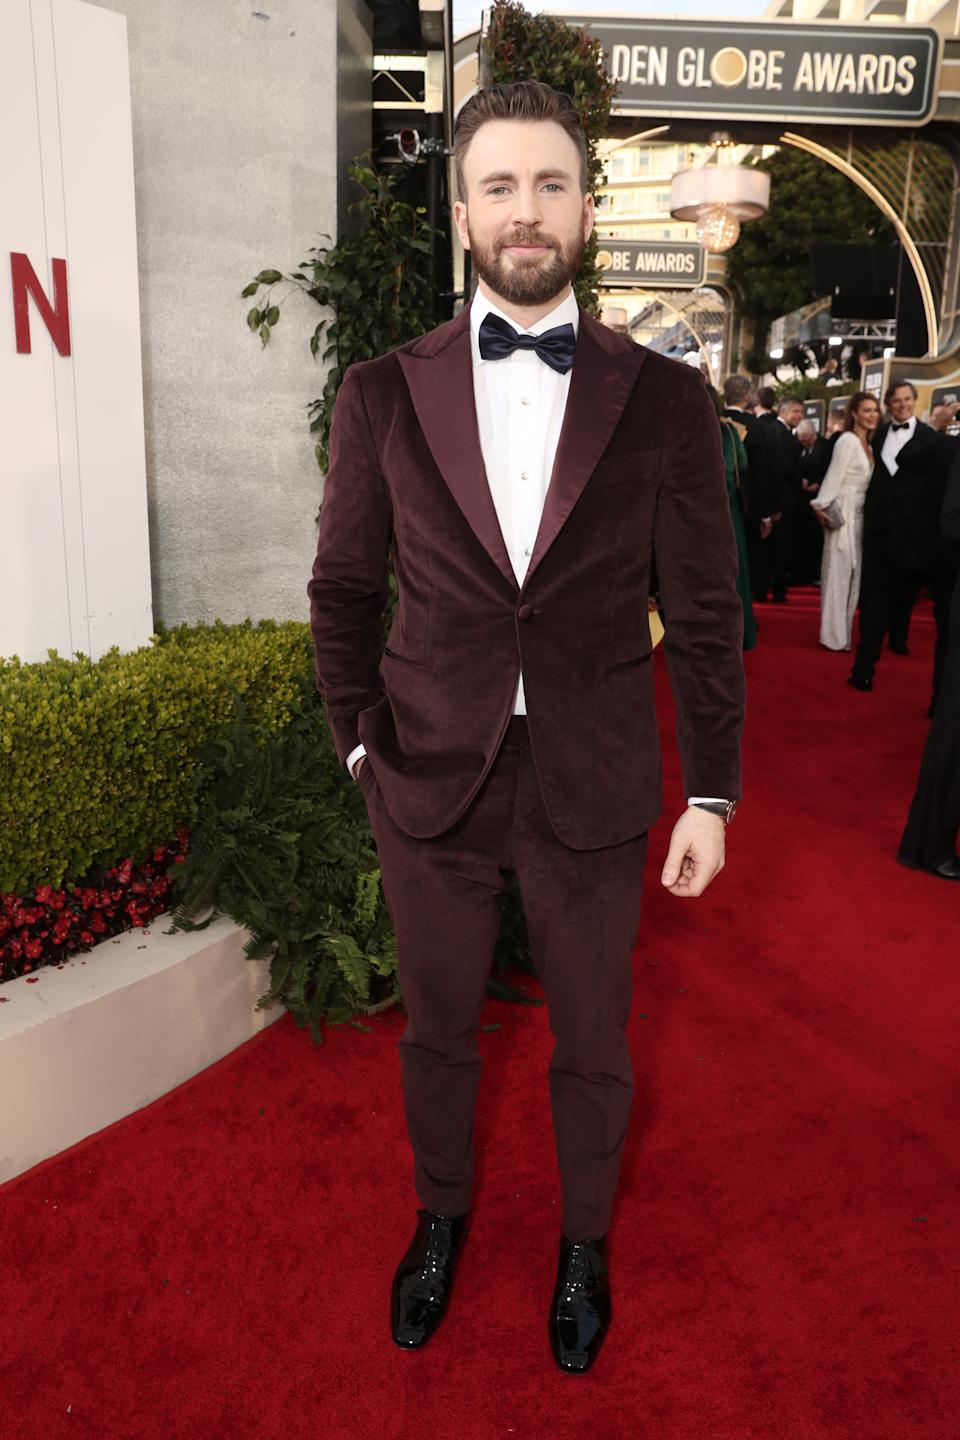 """Evans opted for a brown velvet suit to support his nominated film """"Knives Out."""" (Photo by: Todd Williamson/NBC/NBCU Photo Bank via Getty Images)"""